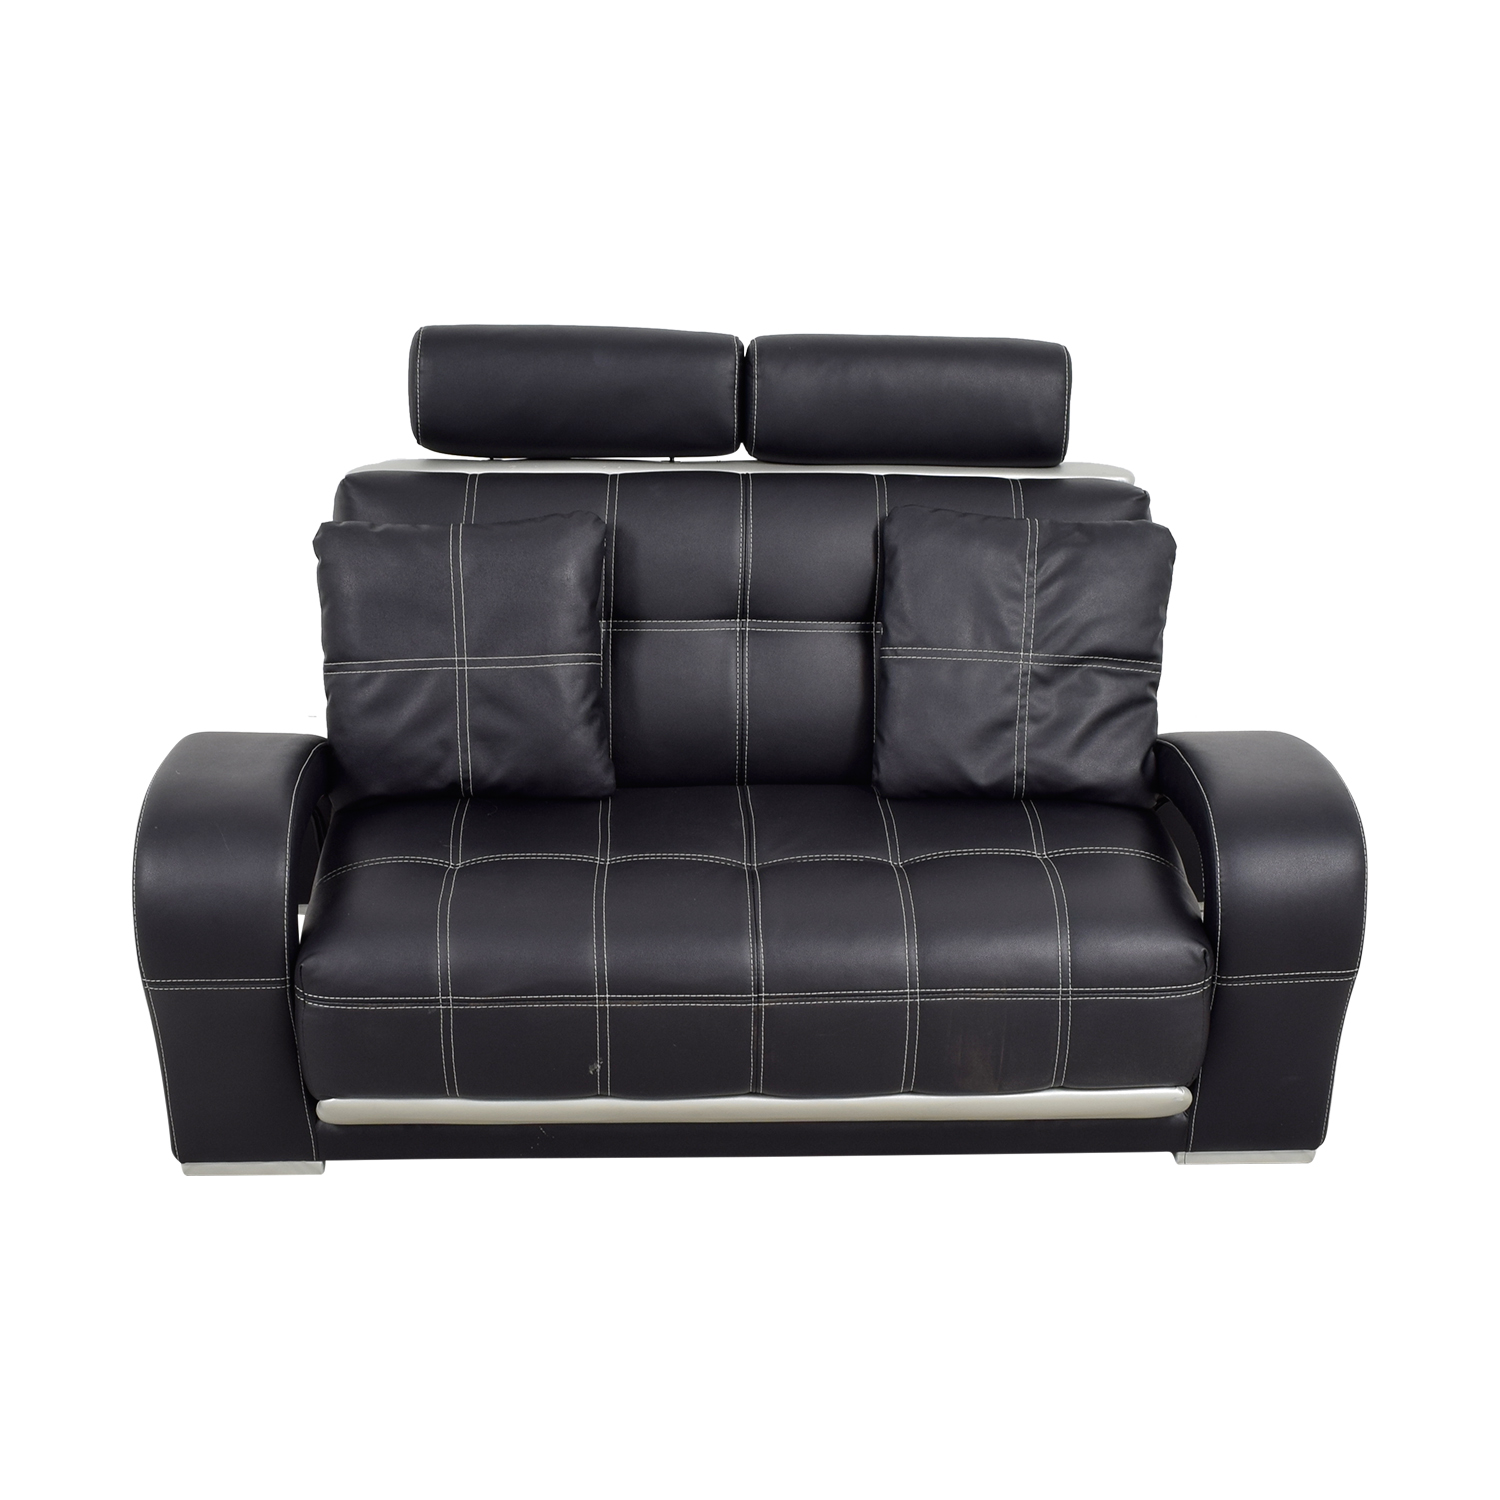 Black Leather Love Seat with Pillows used